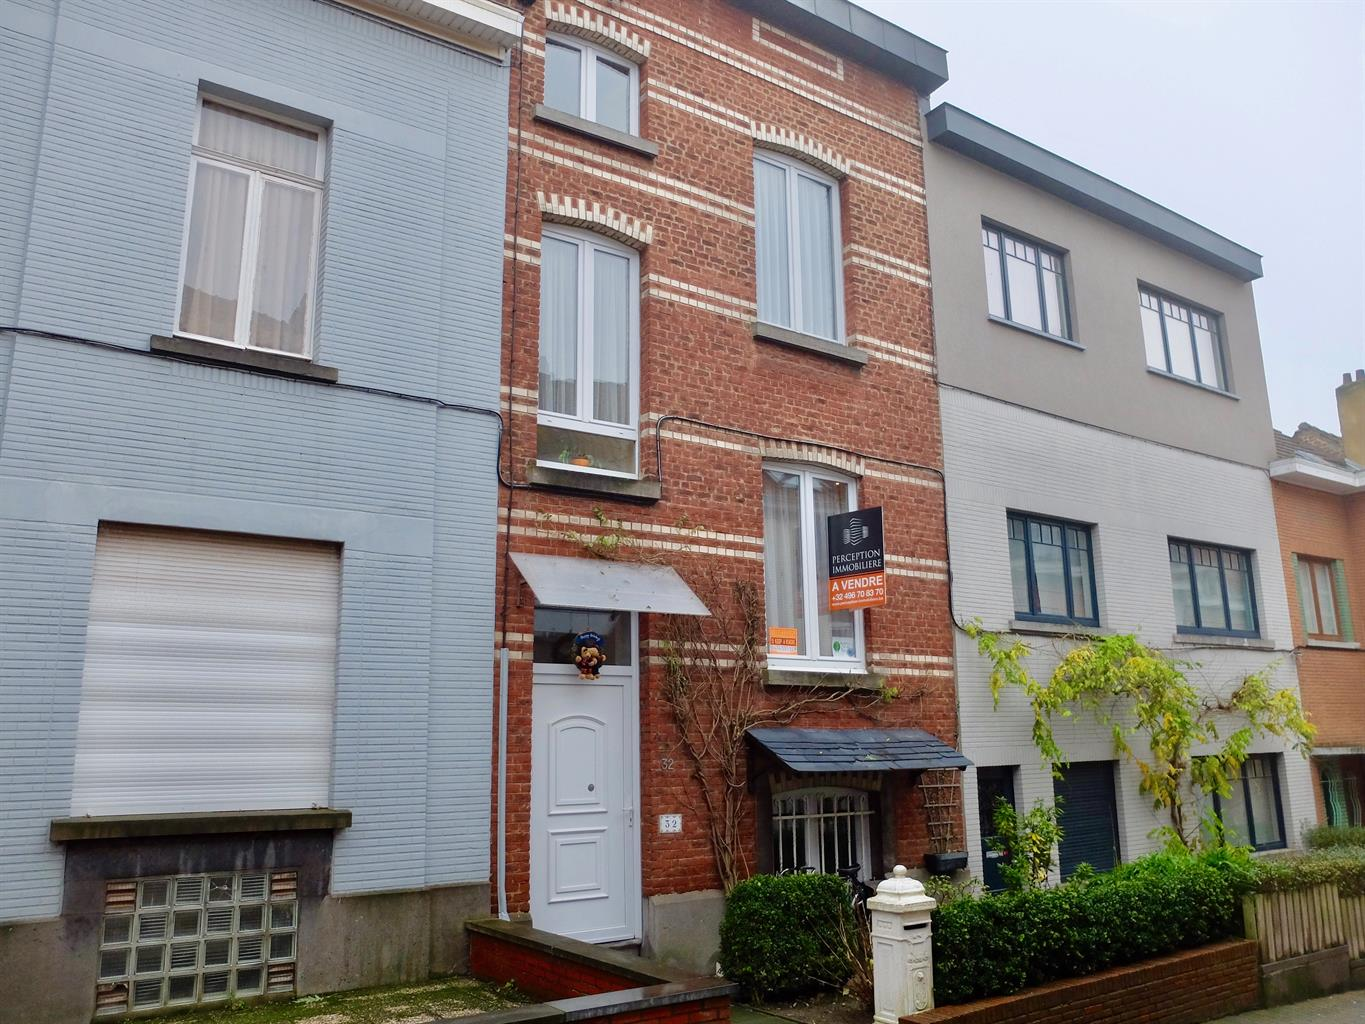 House - Berchem-Sainte-Agathe - #3257864-24